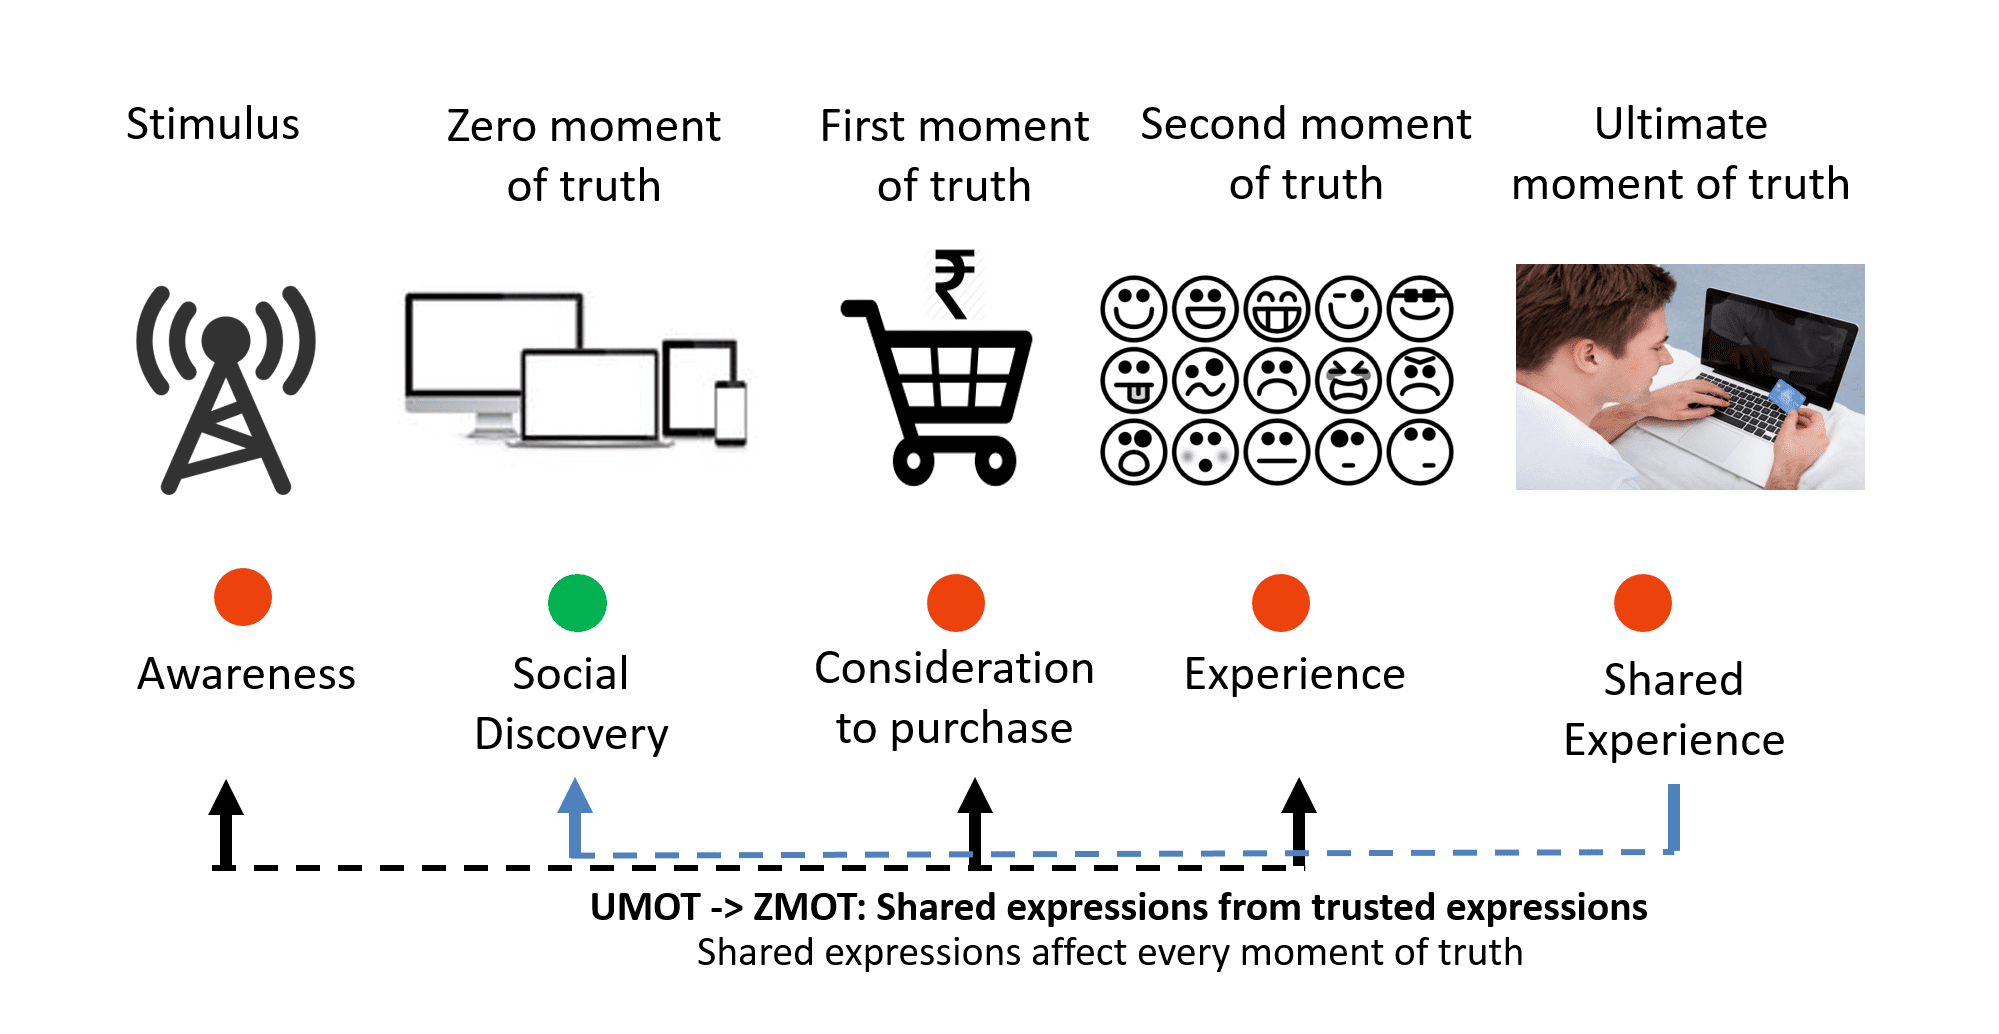 General definitions and steps of moments of truth